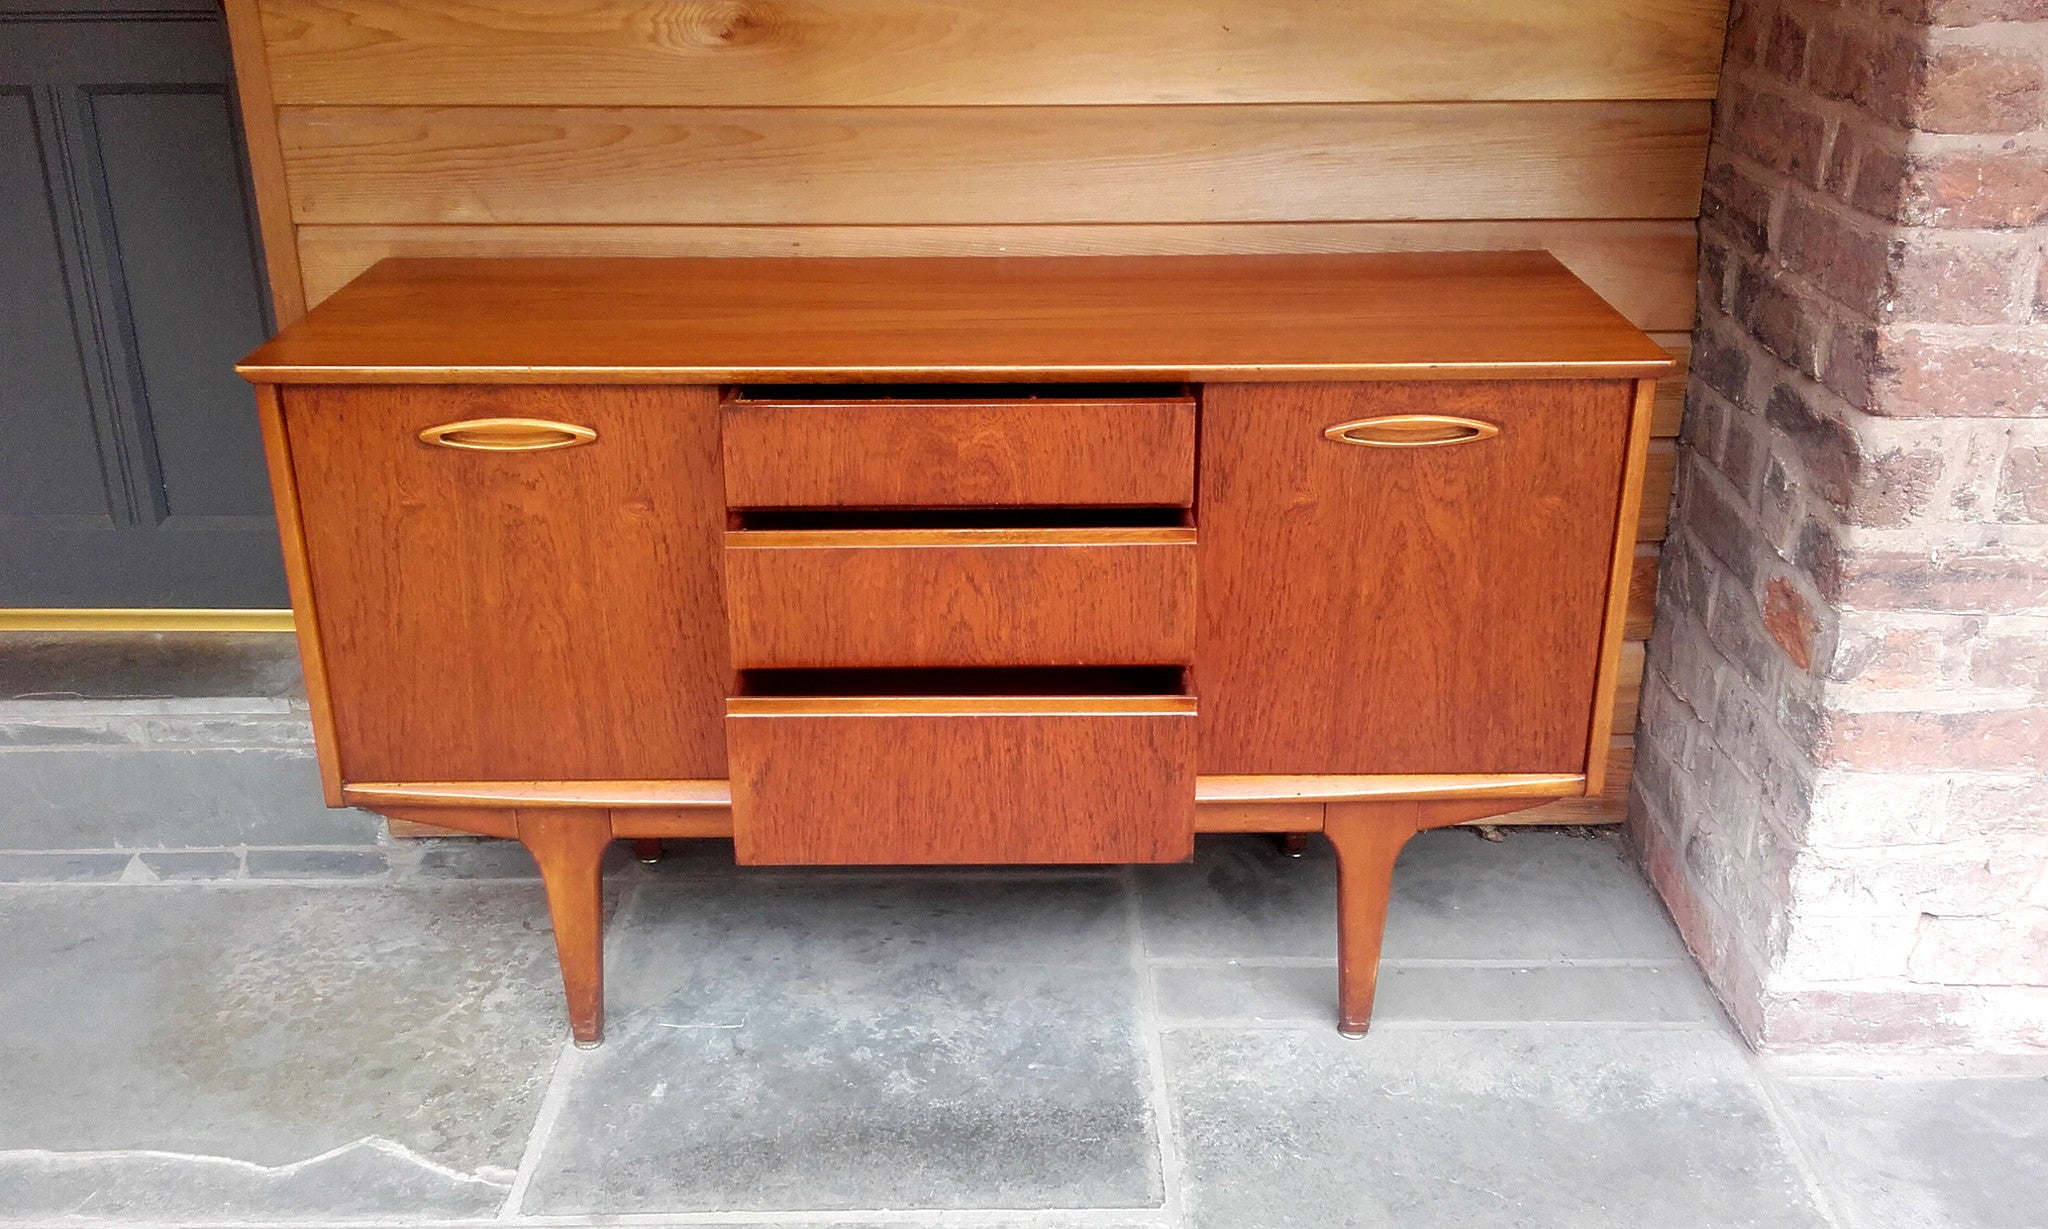 Lovely compact jentique sideboard with sliding doors and unusual lovely compact jentique sideboard with sliding doors and unusual elliptical handles vtopaller Gallery